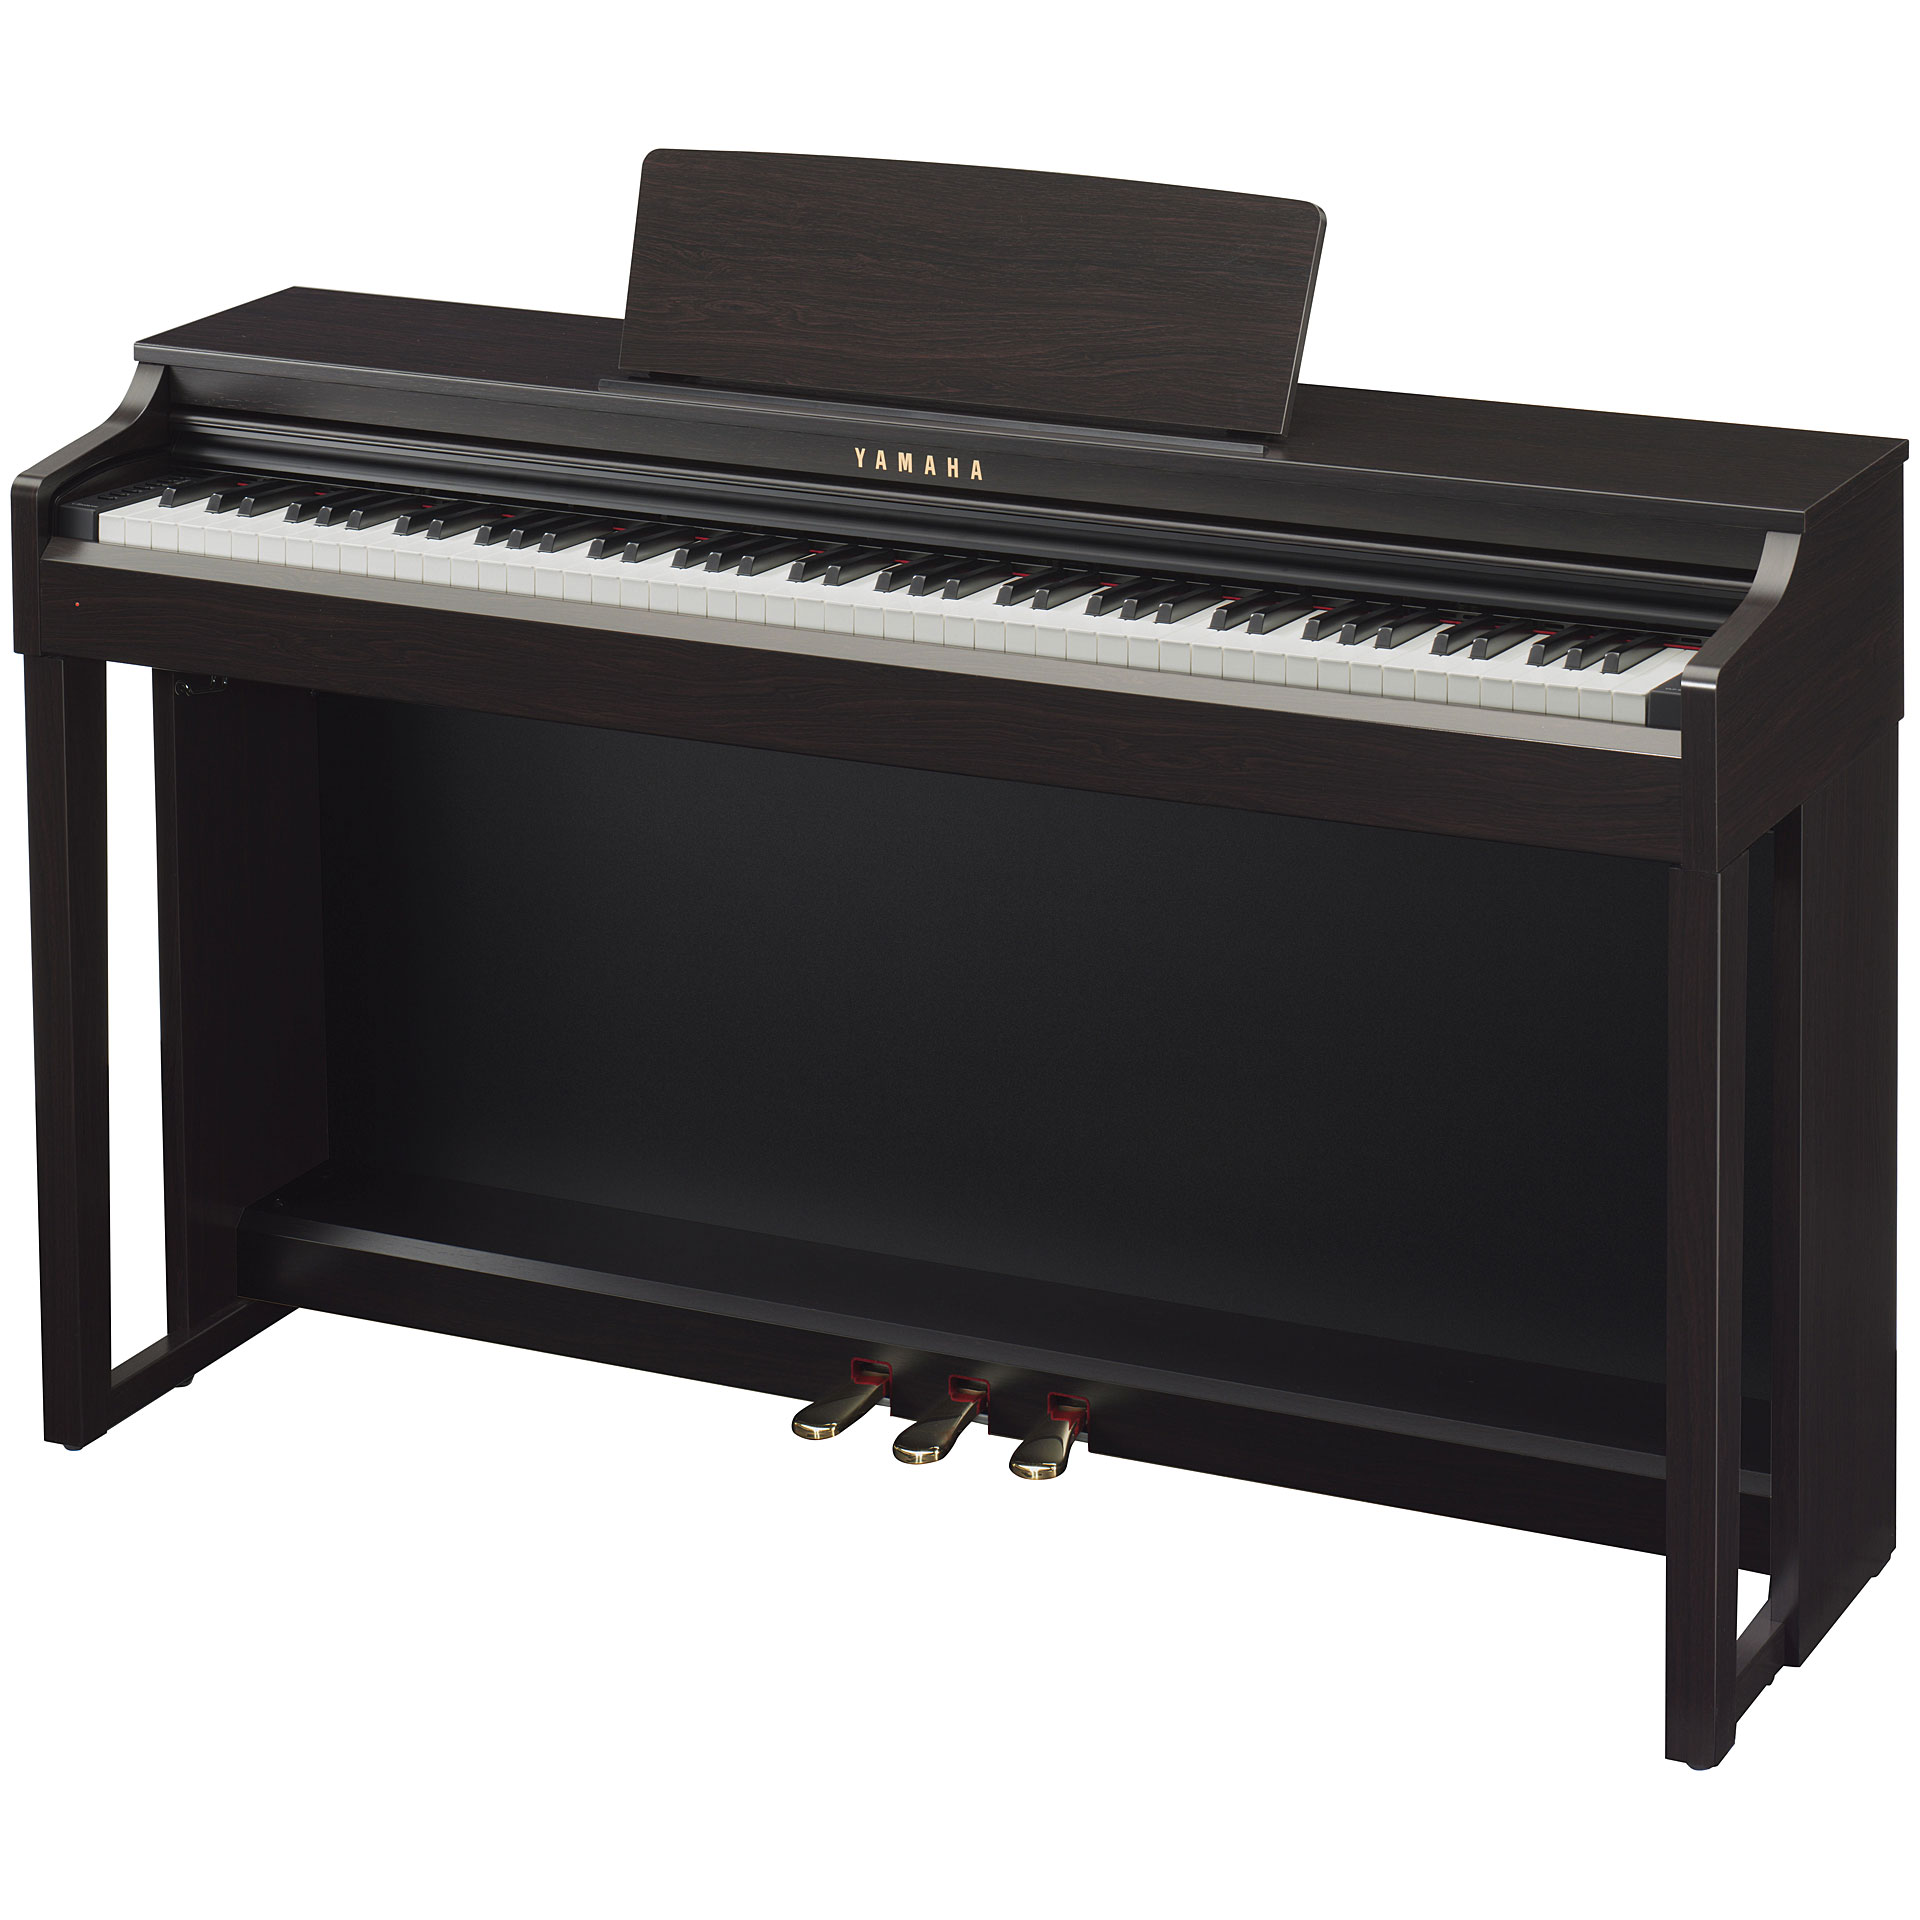 Yamaha clavinova clp 525r digital piano for Yamaha clavinova price list